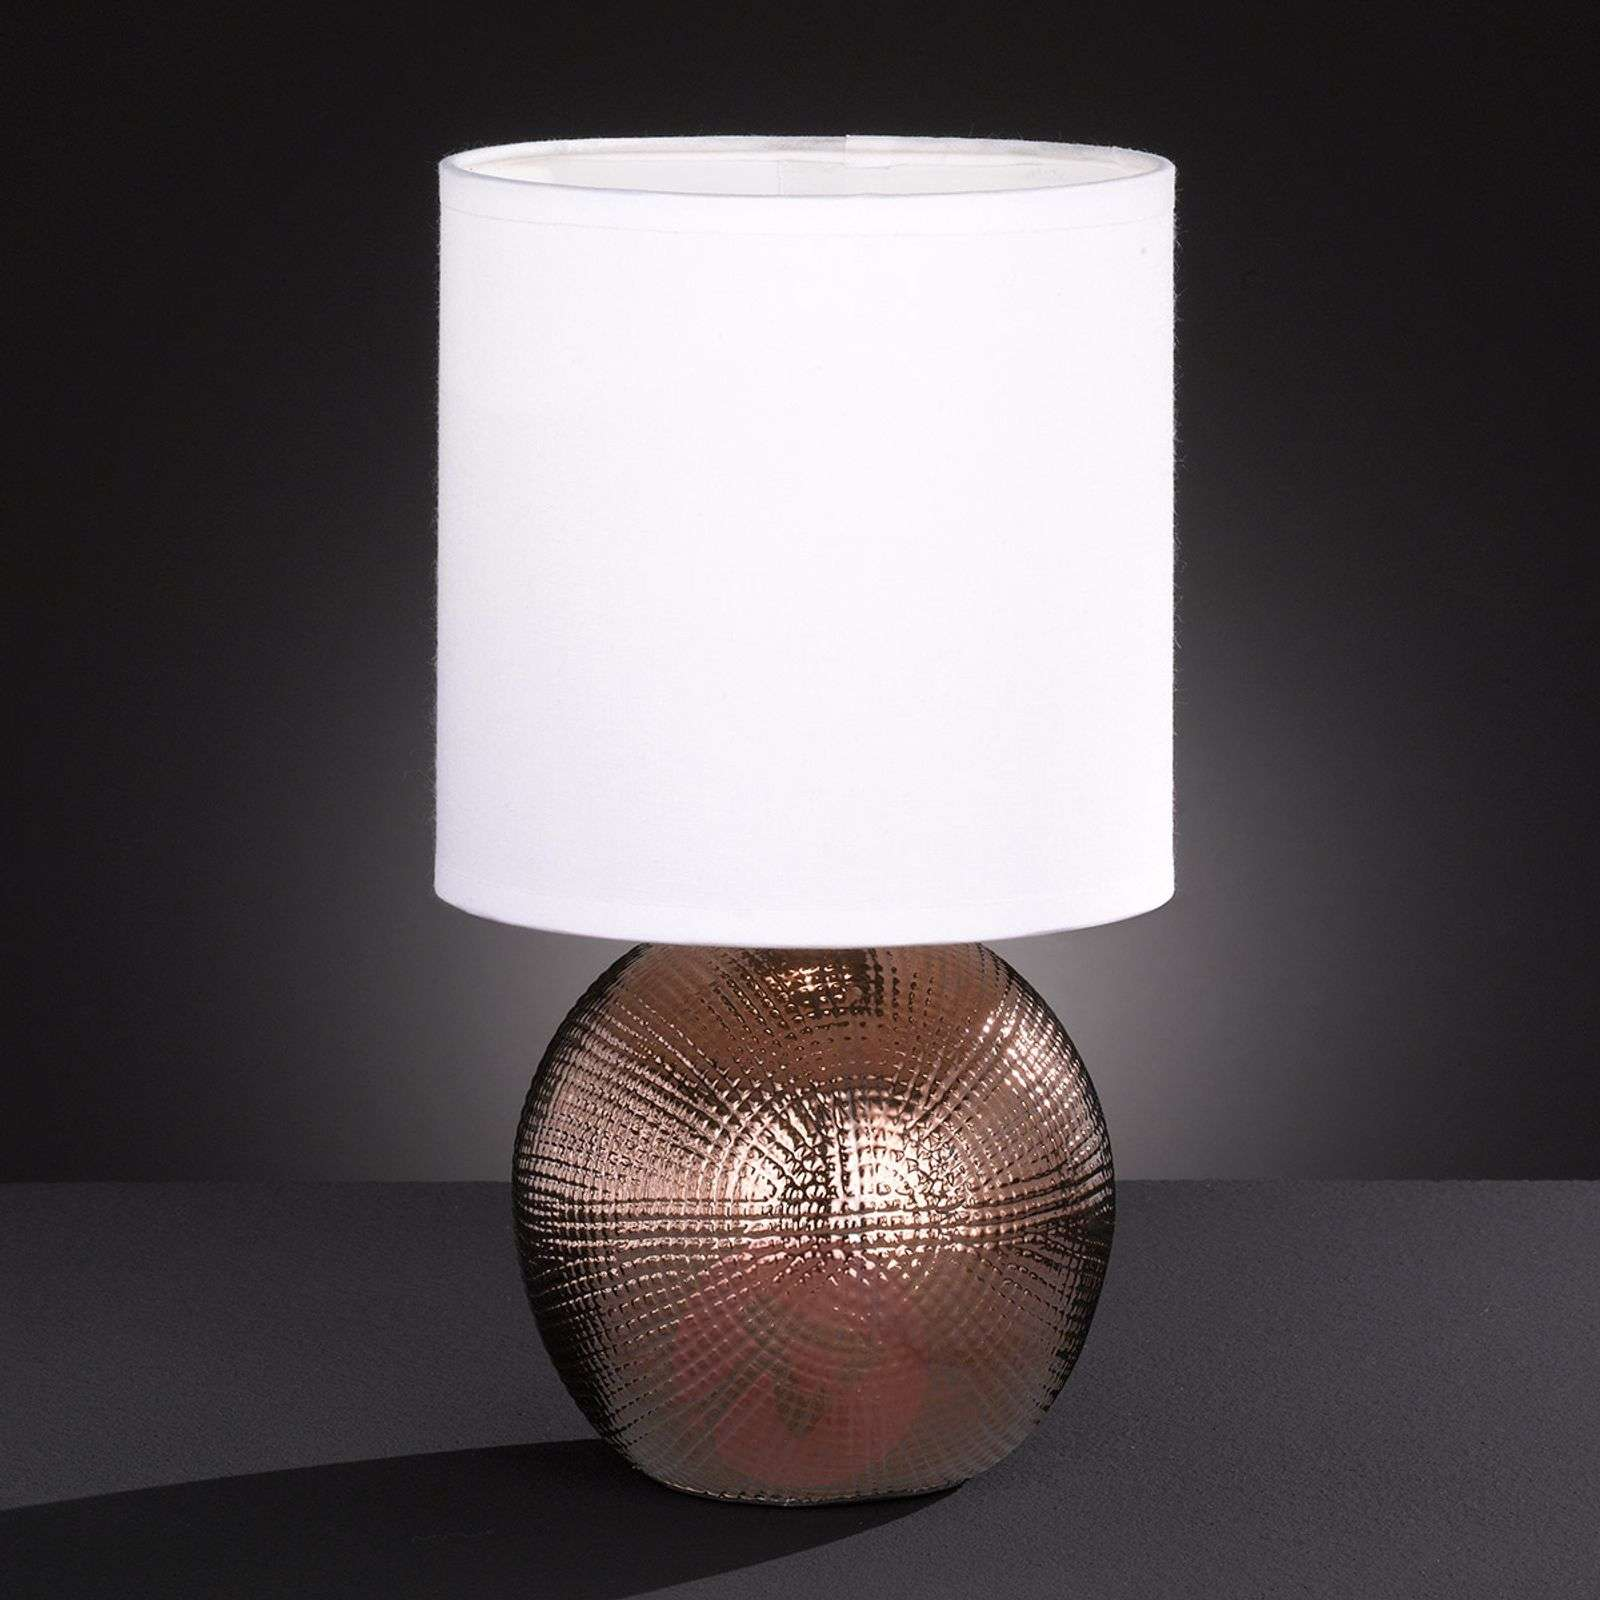 Little table lamp Foro with copper-coloured base-4581157-01